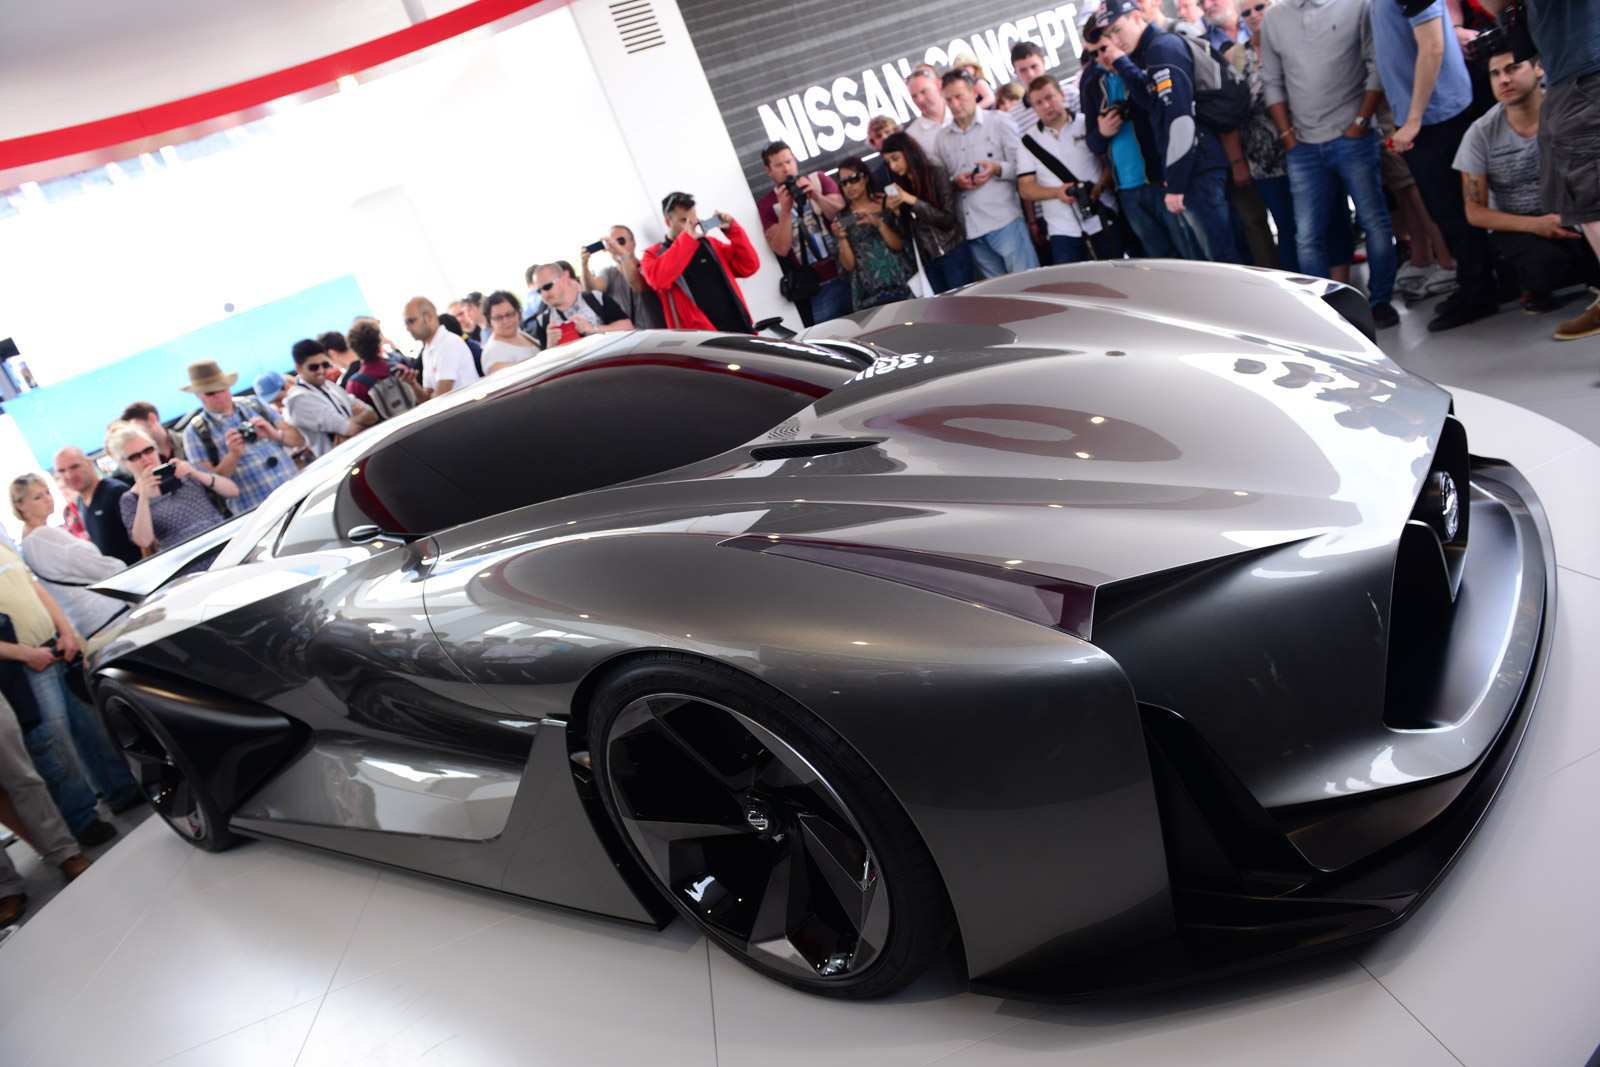 48 Great Nissan Gtr R36 Concept 2020 Release Date for Nissan Gtr R36 Concept 2020